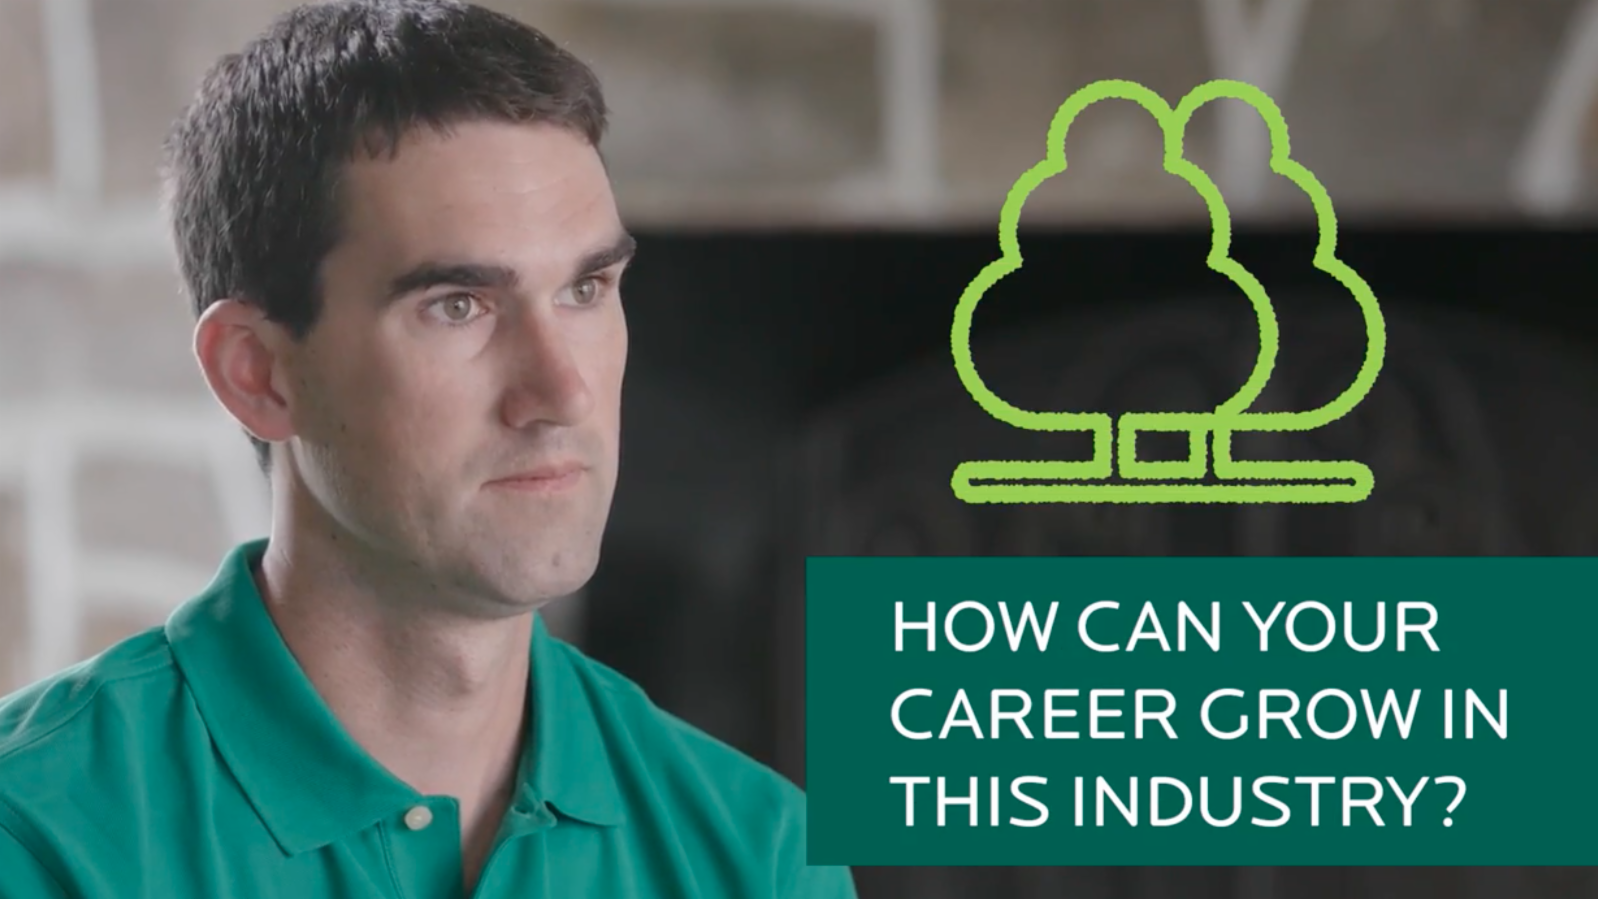 How Can Your Career Grow in the Landscape Industry? - Landscape Career Videos